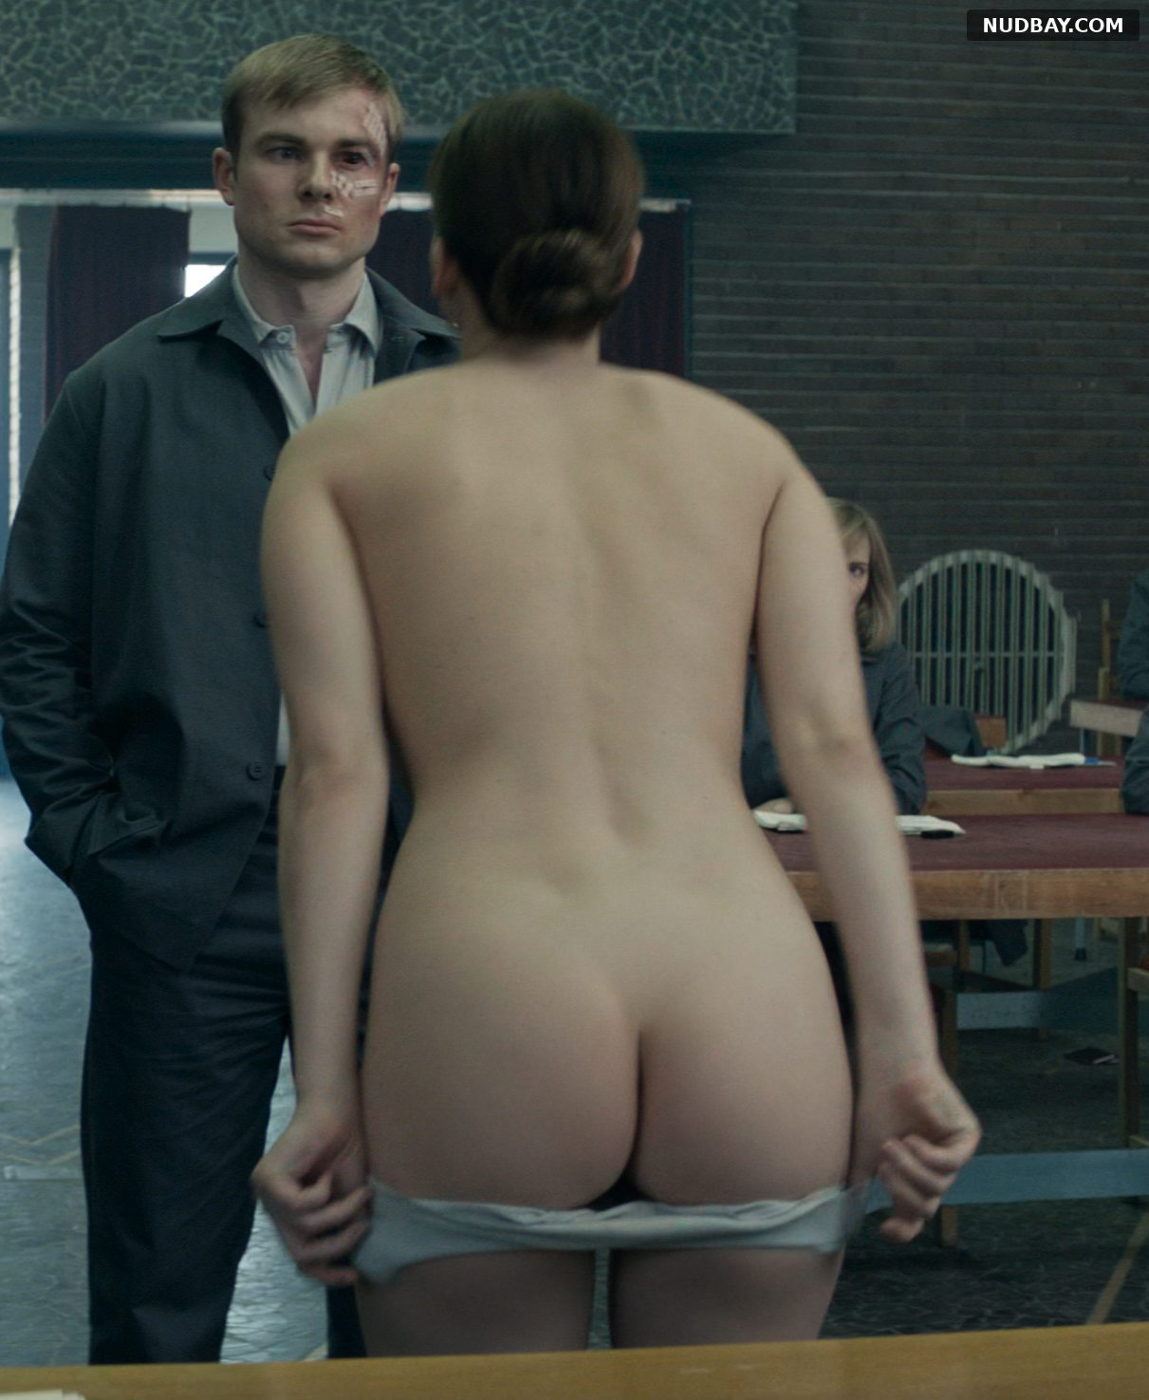 Jennifer Lawrence nude in Red Sparrow (2018)